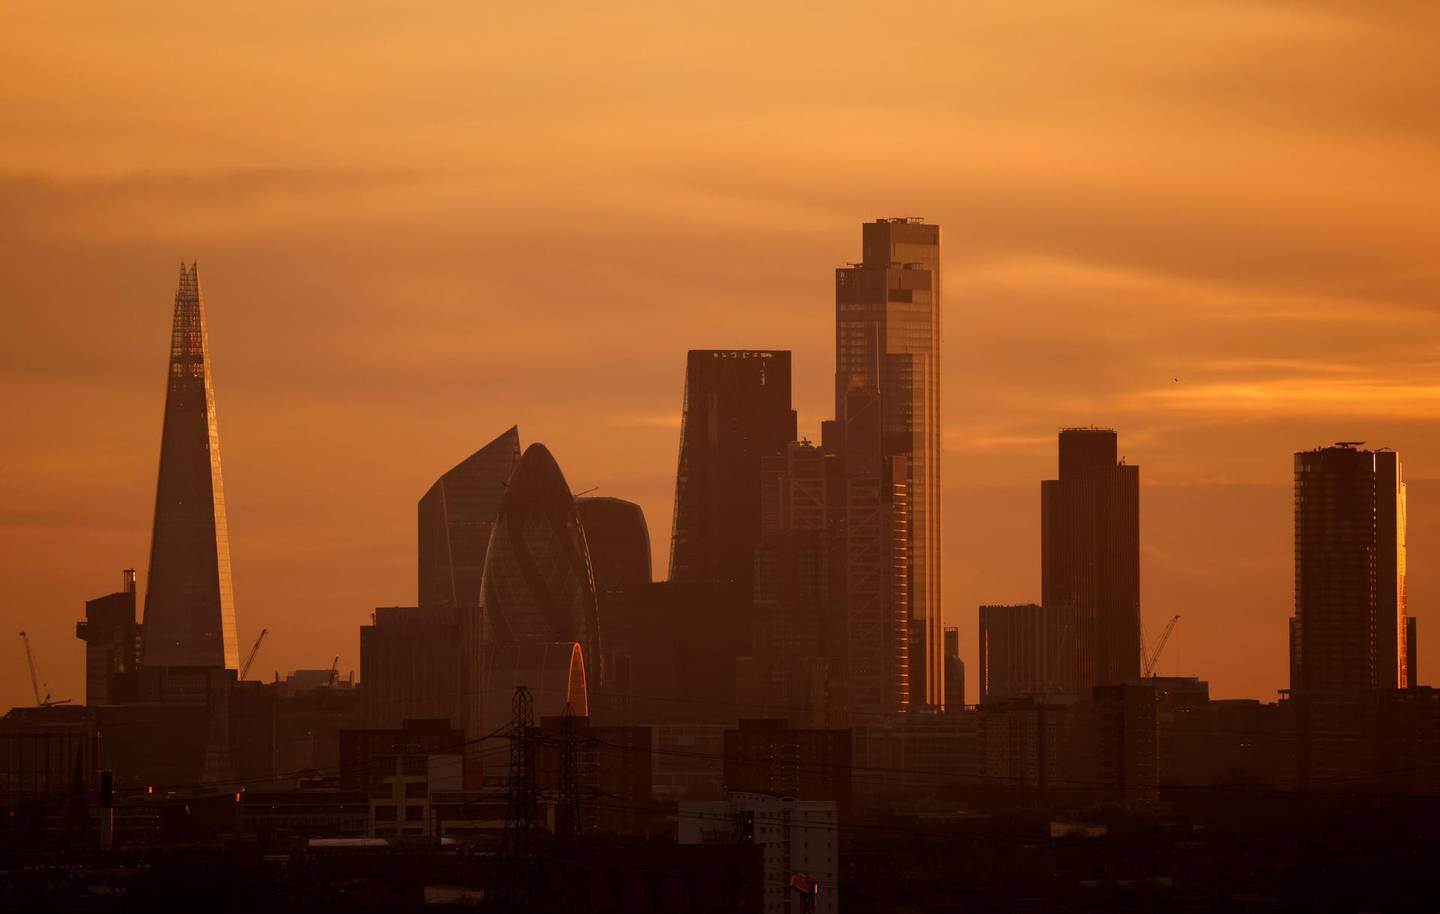 The skyscrapers and office buildings in the City of London, including The Shard (L), are bathed in yellow light during the autumn sunset on November 24, 2020. Britain's government, seeking to support the pandemic-ravaged economy and the nation's post-Brexit future, on Wednesday unveils its eagerly-awaited spending plans. Finance minister Rishi Sunak will deliver his spending review to parliament, one week before England ends a month of restrictions aimed at cutting a second wave of infections.  / AFP / Tolga Akmen